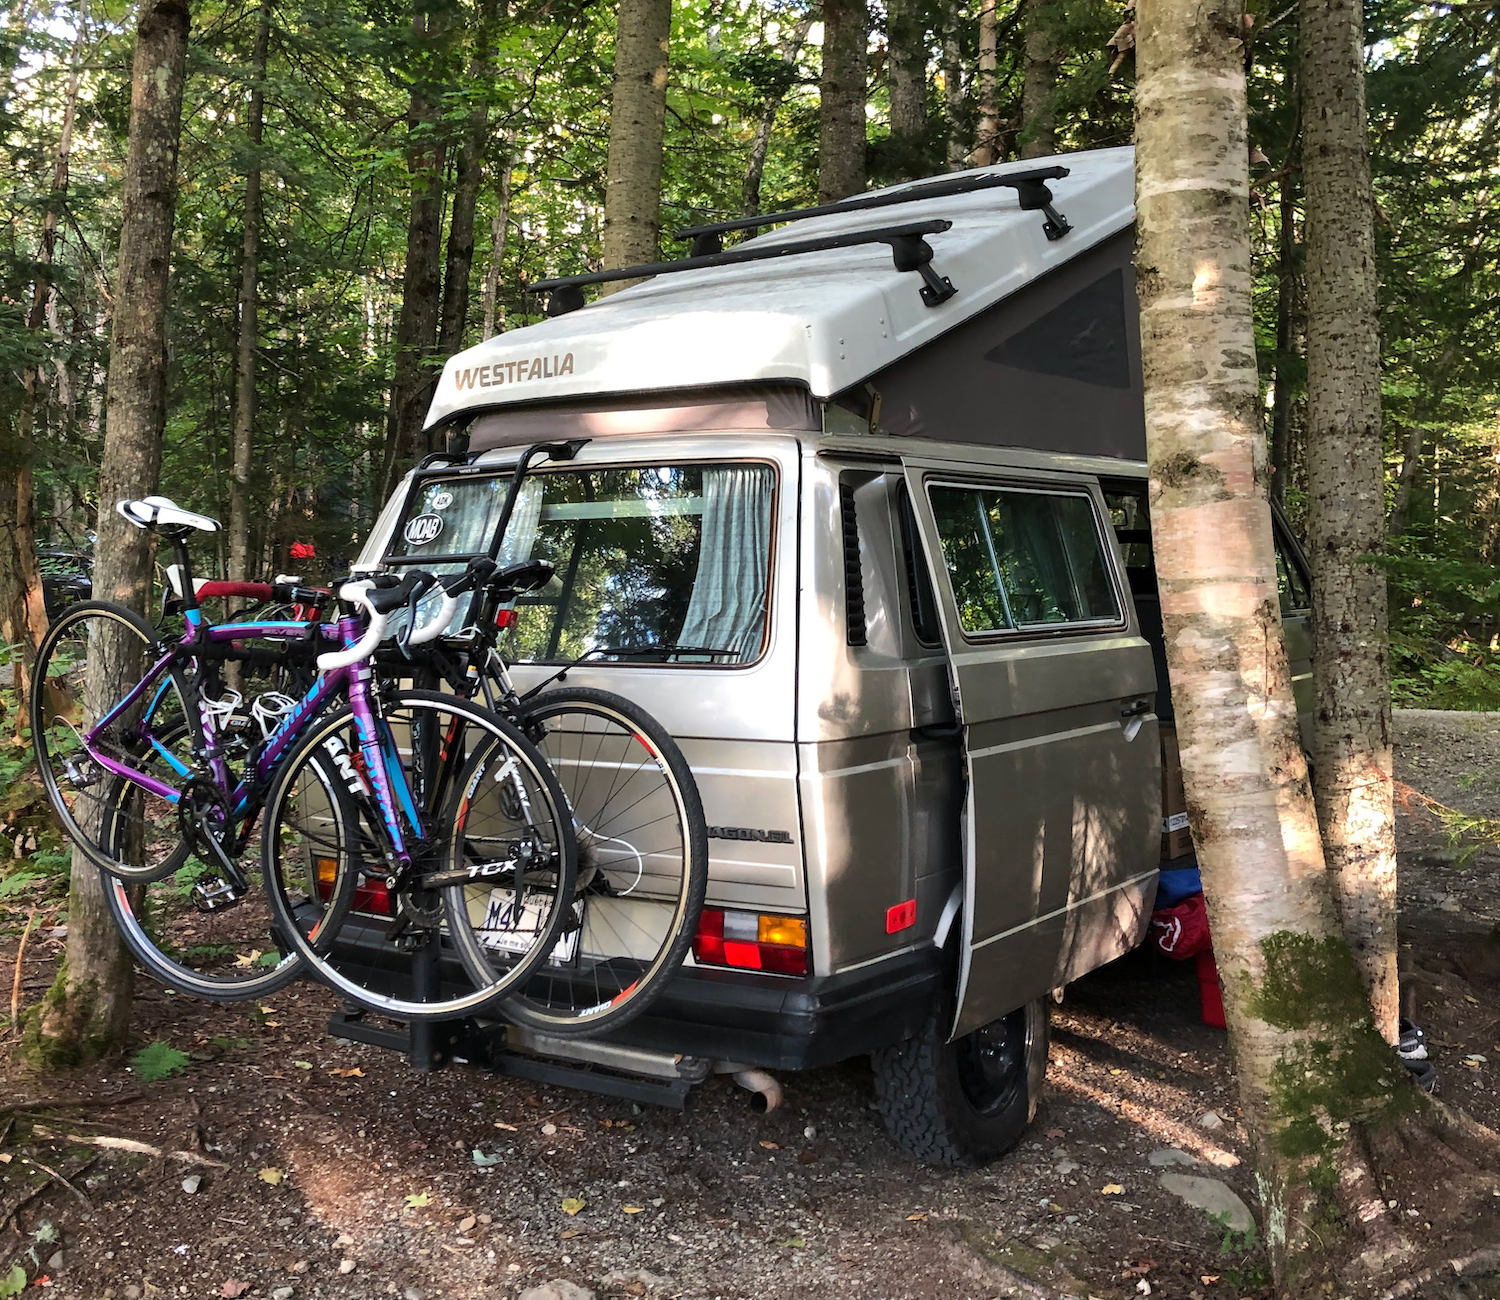 A bike rack on the back of a 1990 Volkswagen Vanagon Westfalia. That's just one of the tips we got from someone who owns the camper van.